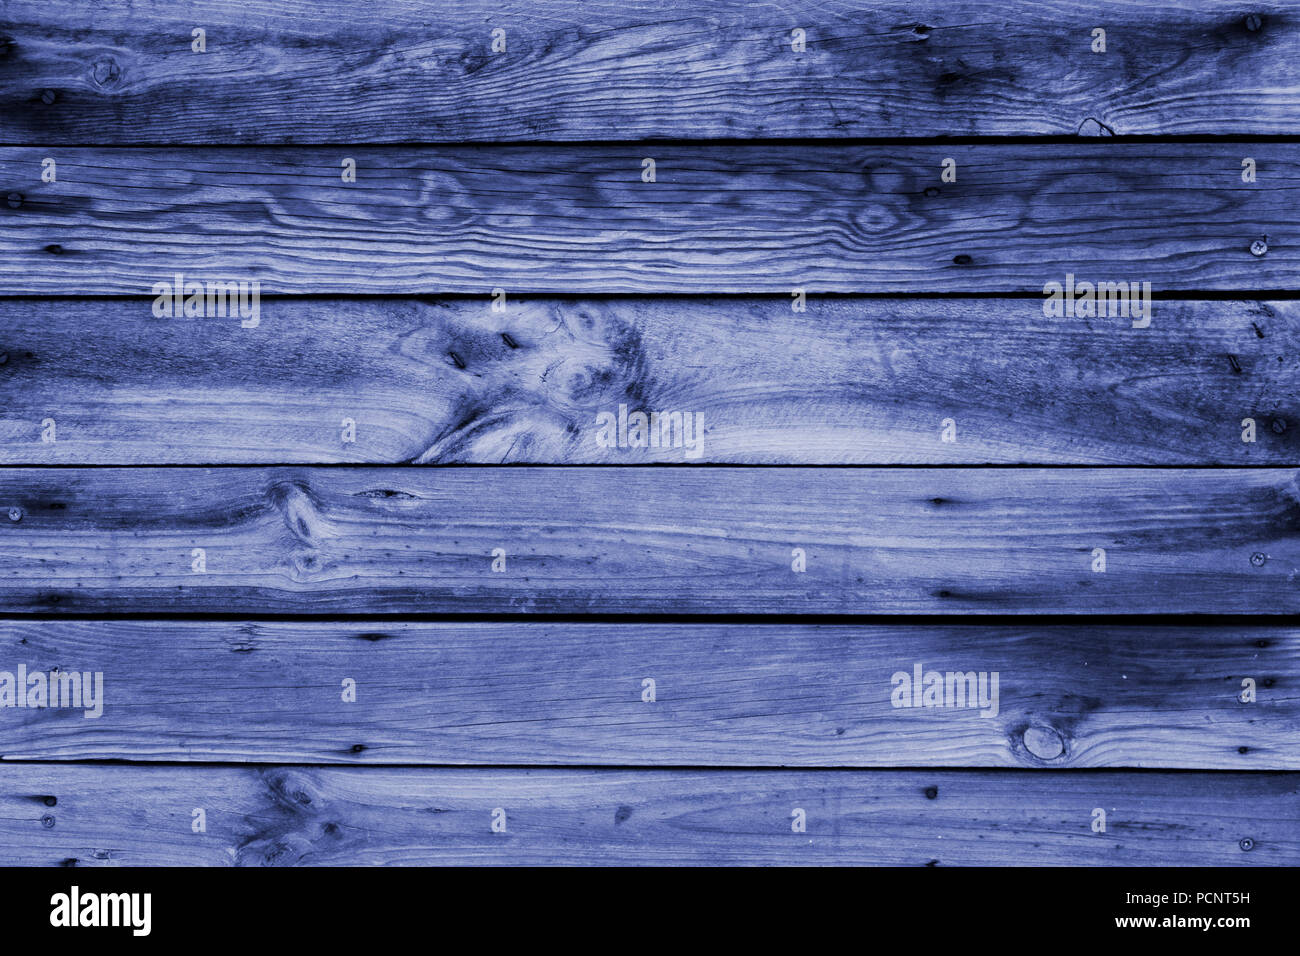 Close-up of the surface (wall, floor or overhead) made of wooden plank, panel or board in the dark blue, navy blue shades - Stock Image